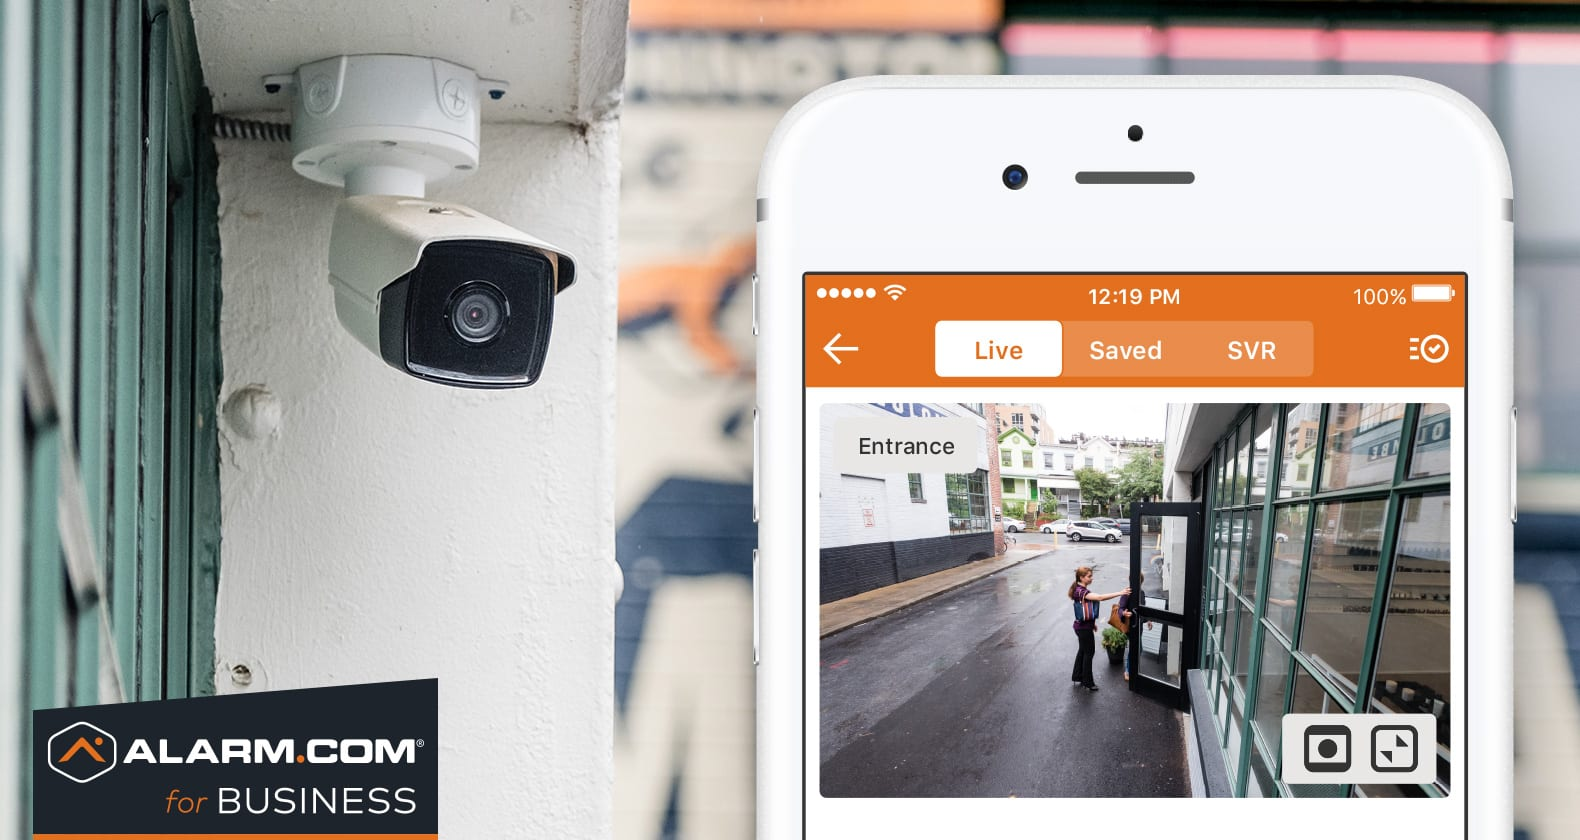 His Security video surveillance and camera solutions enhanced usability